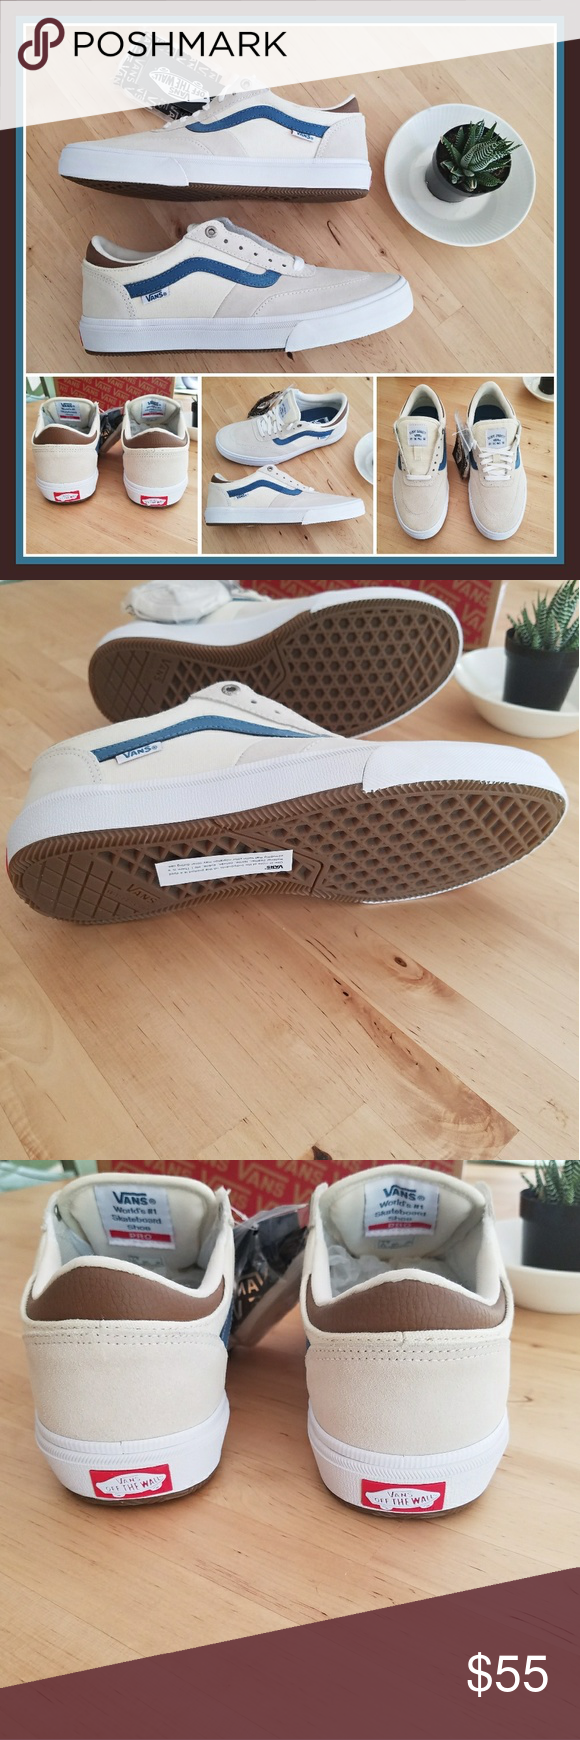 8aedeadb1e Vans Gilbert Crockett Pro 2 Antique white with blue and brown accents.  Brand new with box and tags. Comes with an extra pair of antique white  laces.